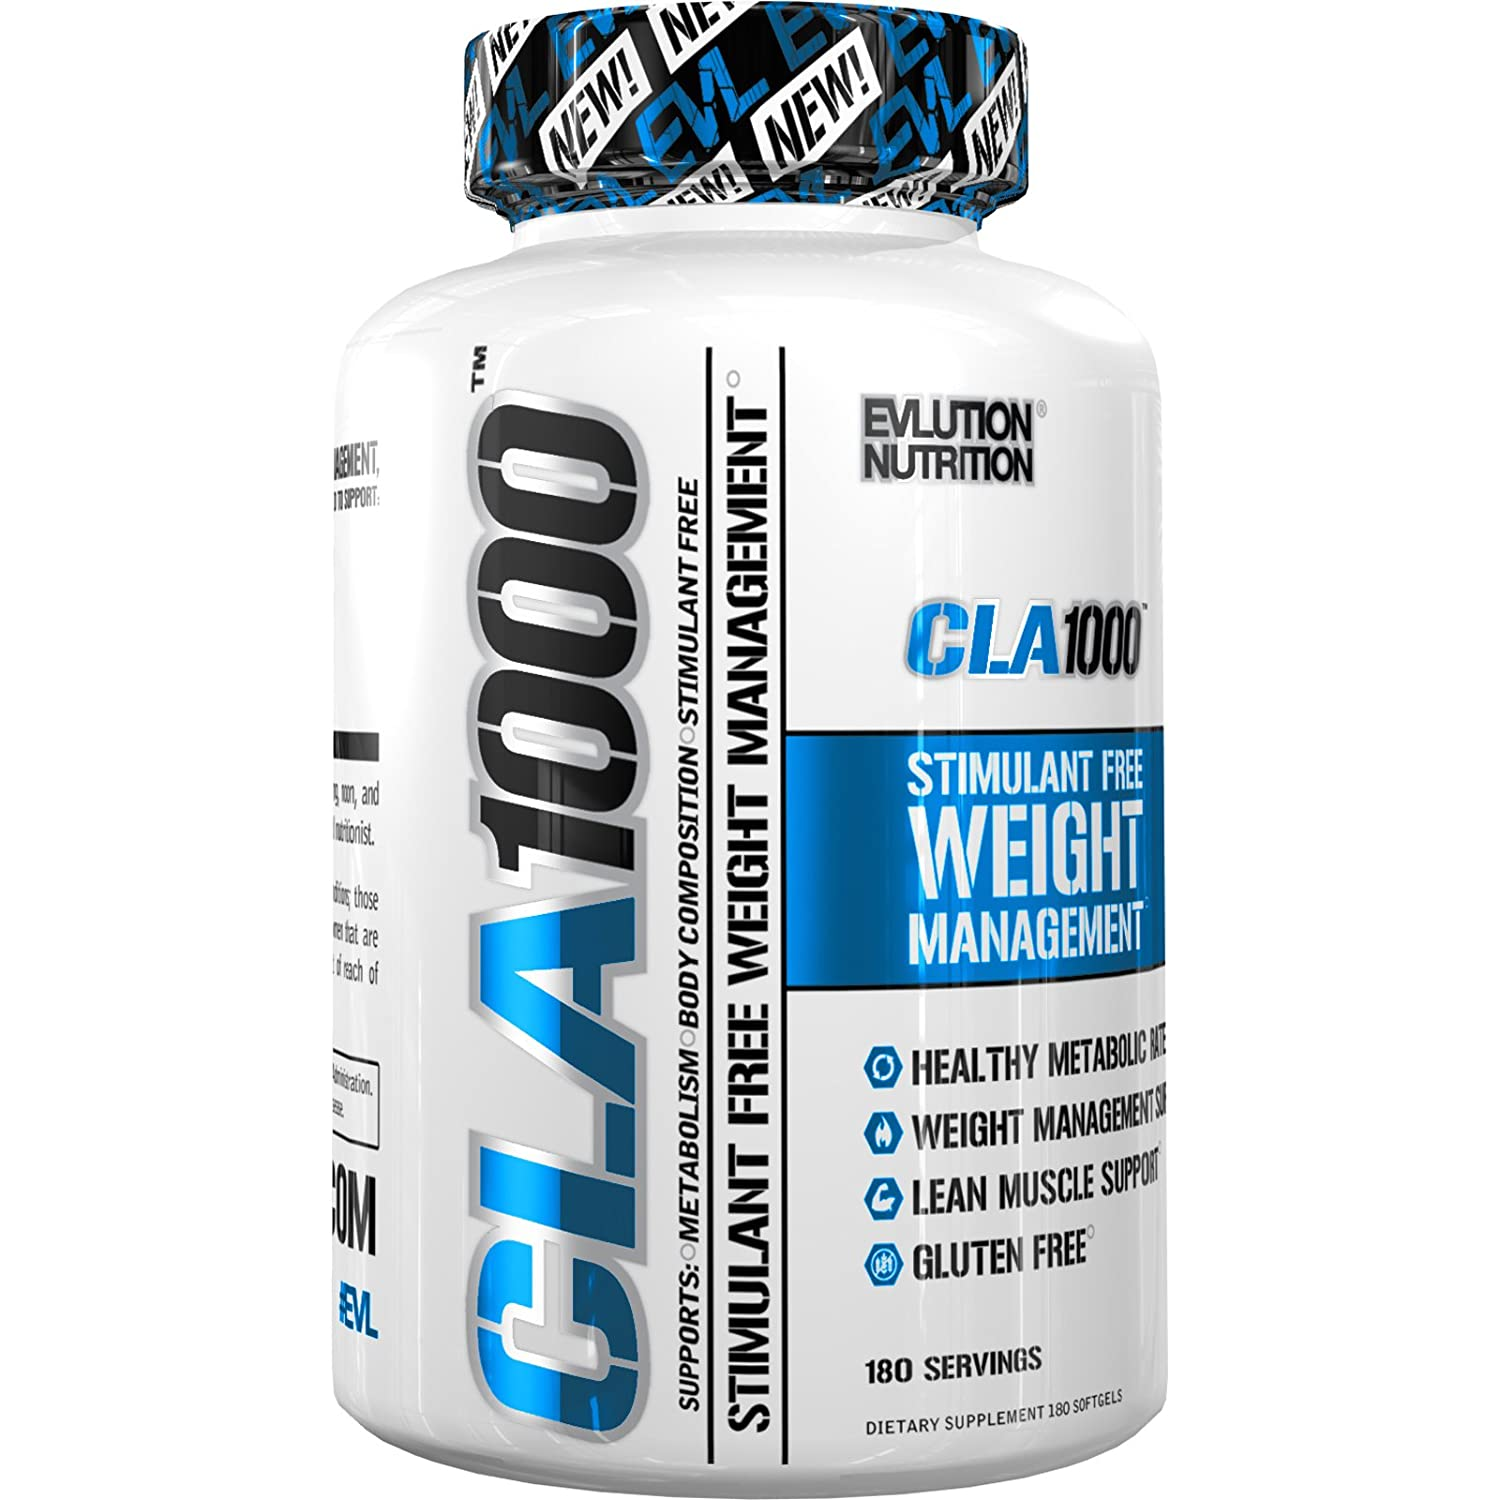 Evlution Nutrition - CLA 1000 Conjugated linoleic acid, 180 Serving Soft Gel, Weight Loss Supplement, Stimulant-Free